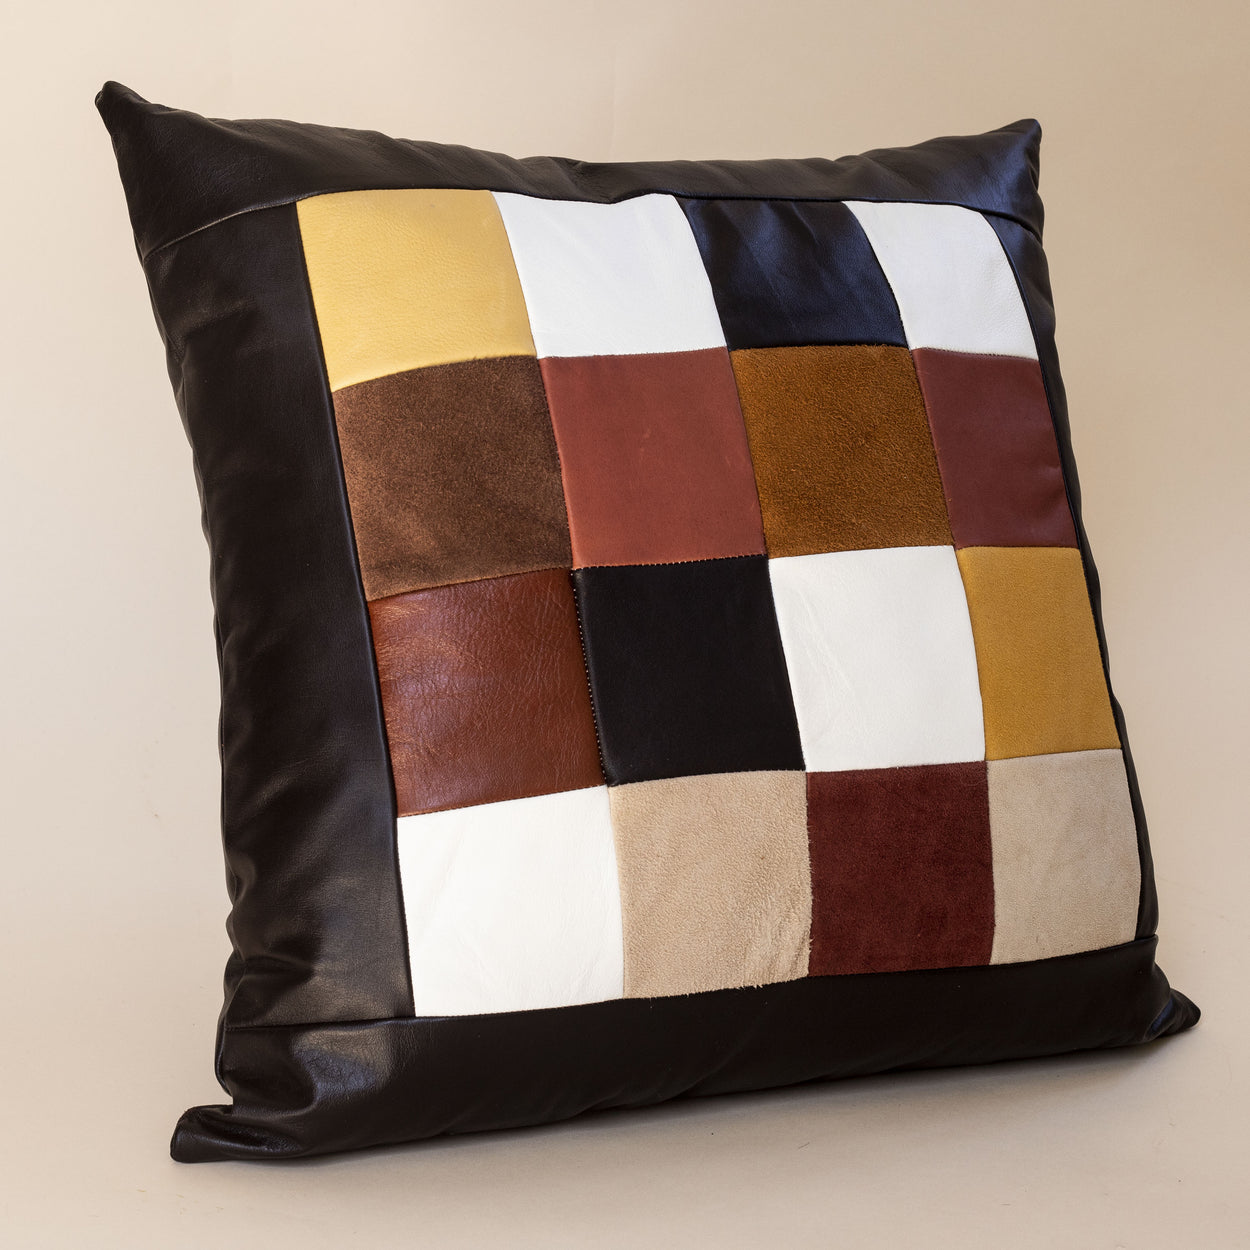 patchwork recycled leather pillow handmade by storyteller studio in Louisville KY